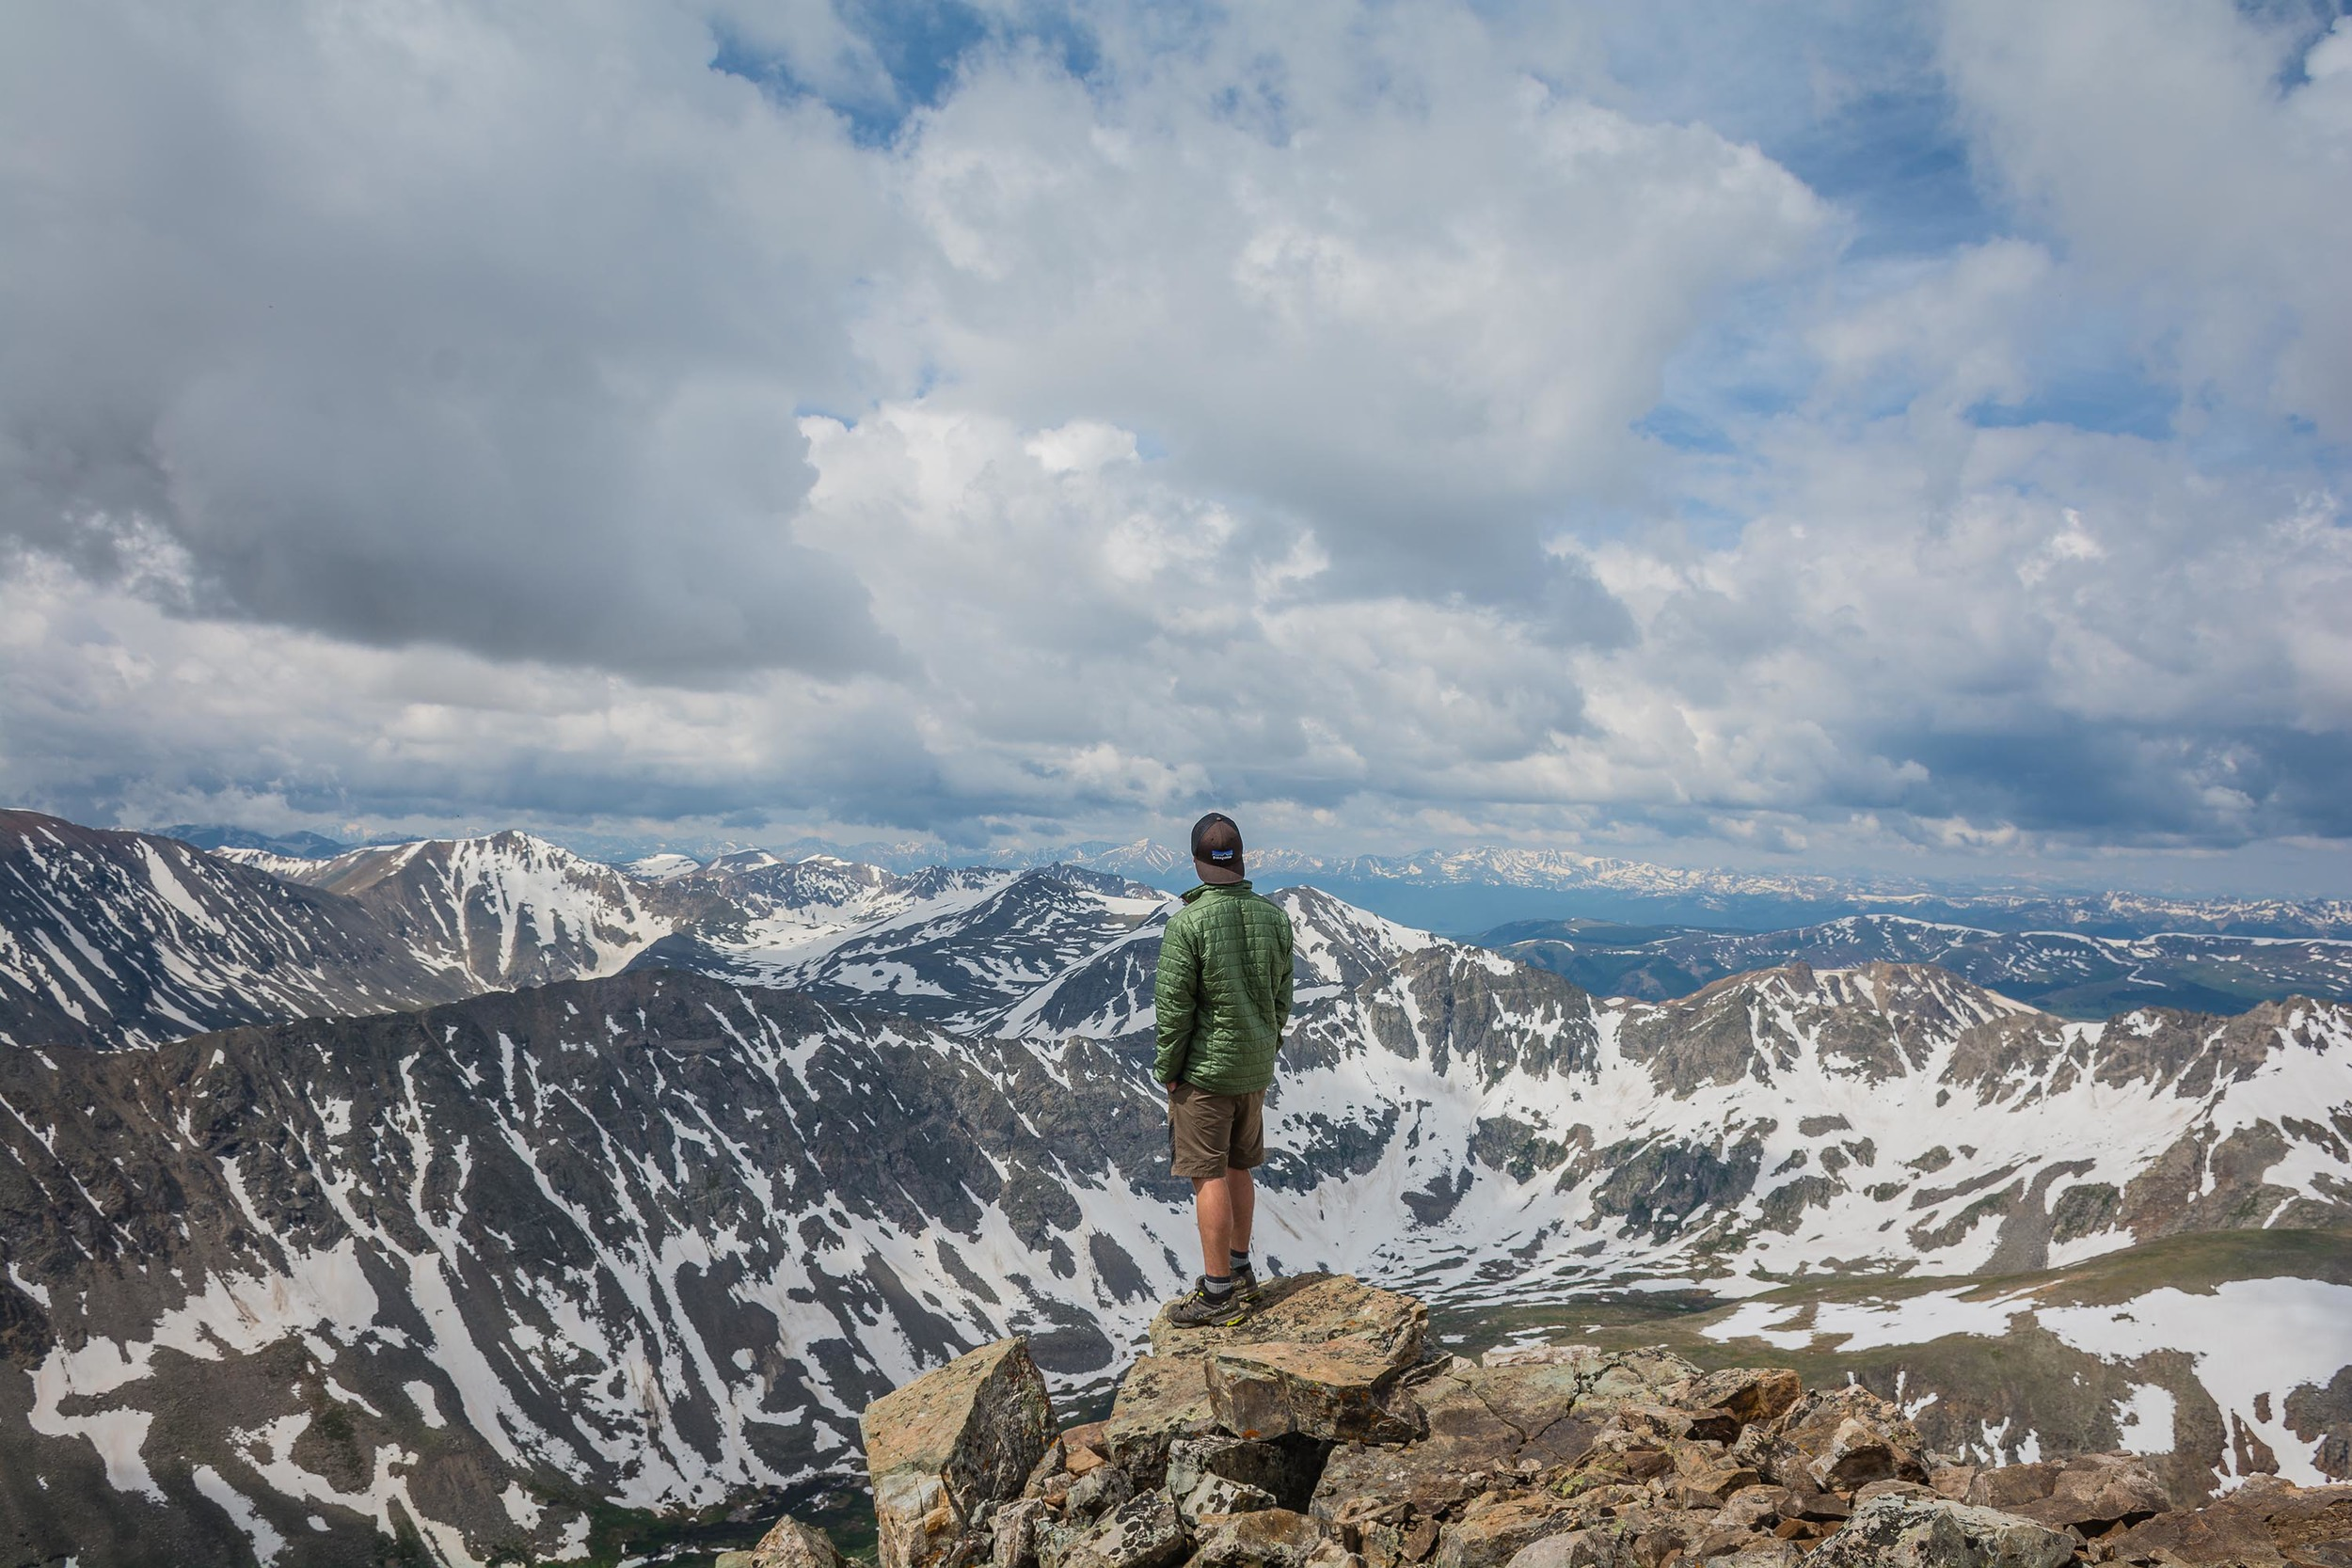 Colorado 14er 14,000ft mountain hike thisworldexists this world exists